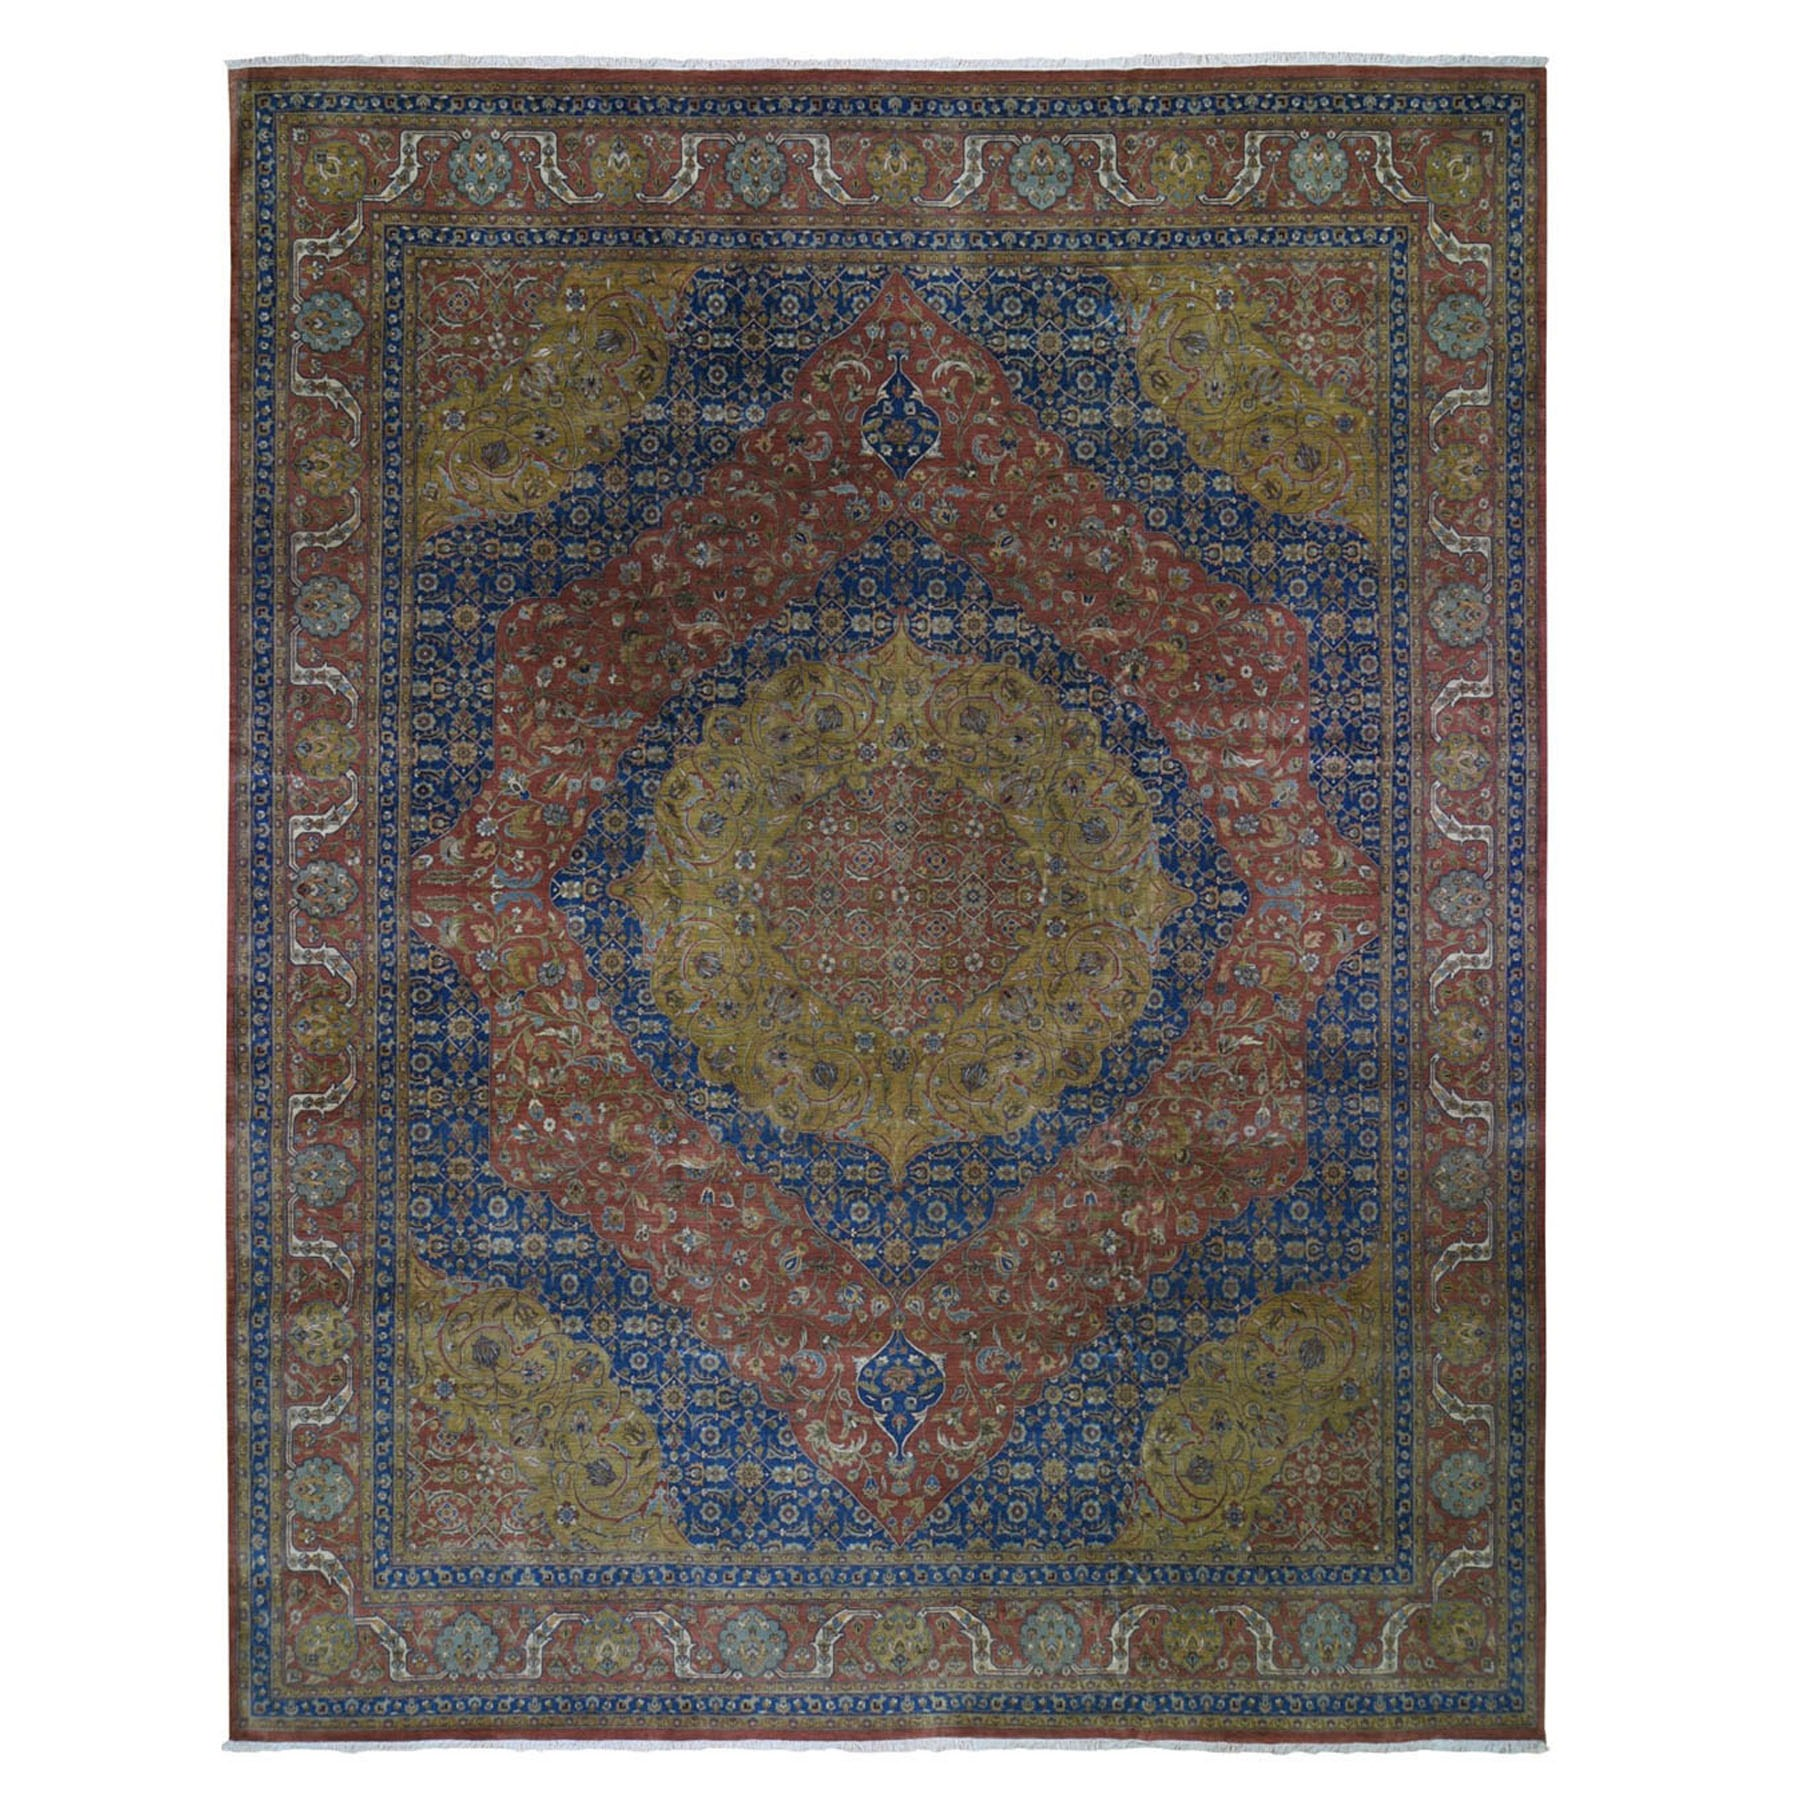 Pirniakan Collection Hand Knotted Red Rug No: 0199534